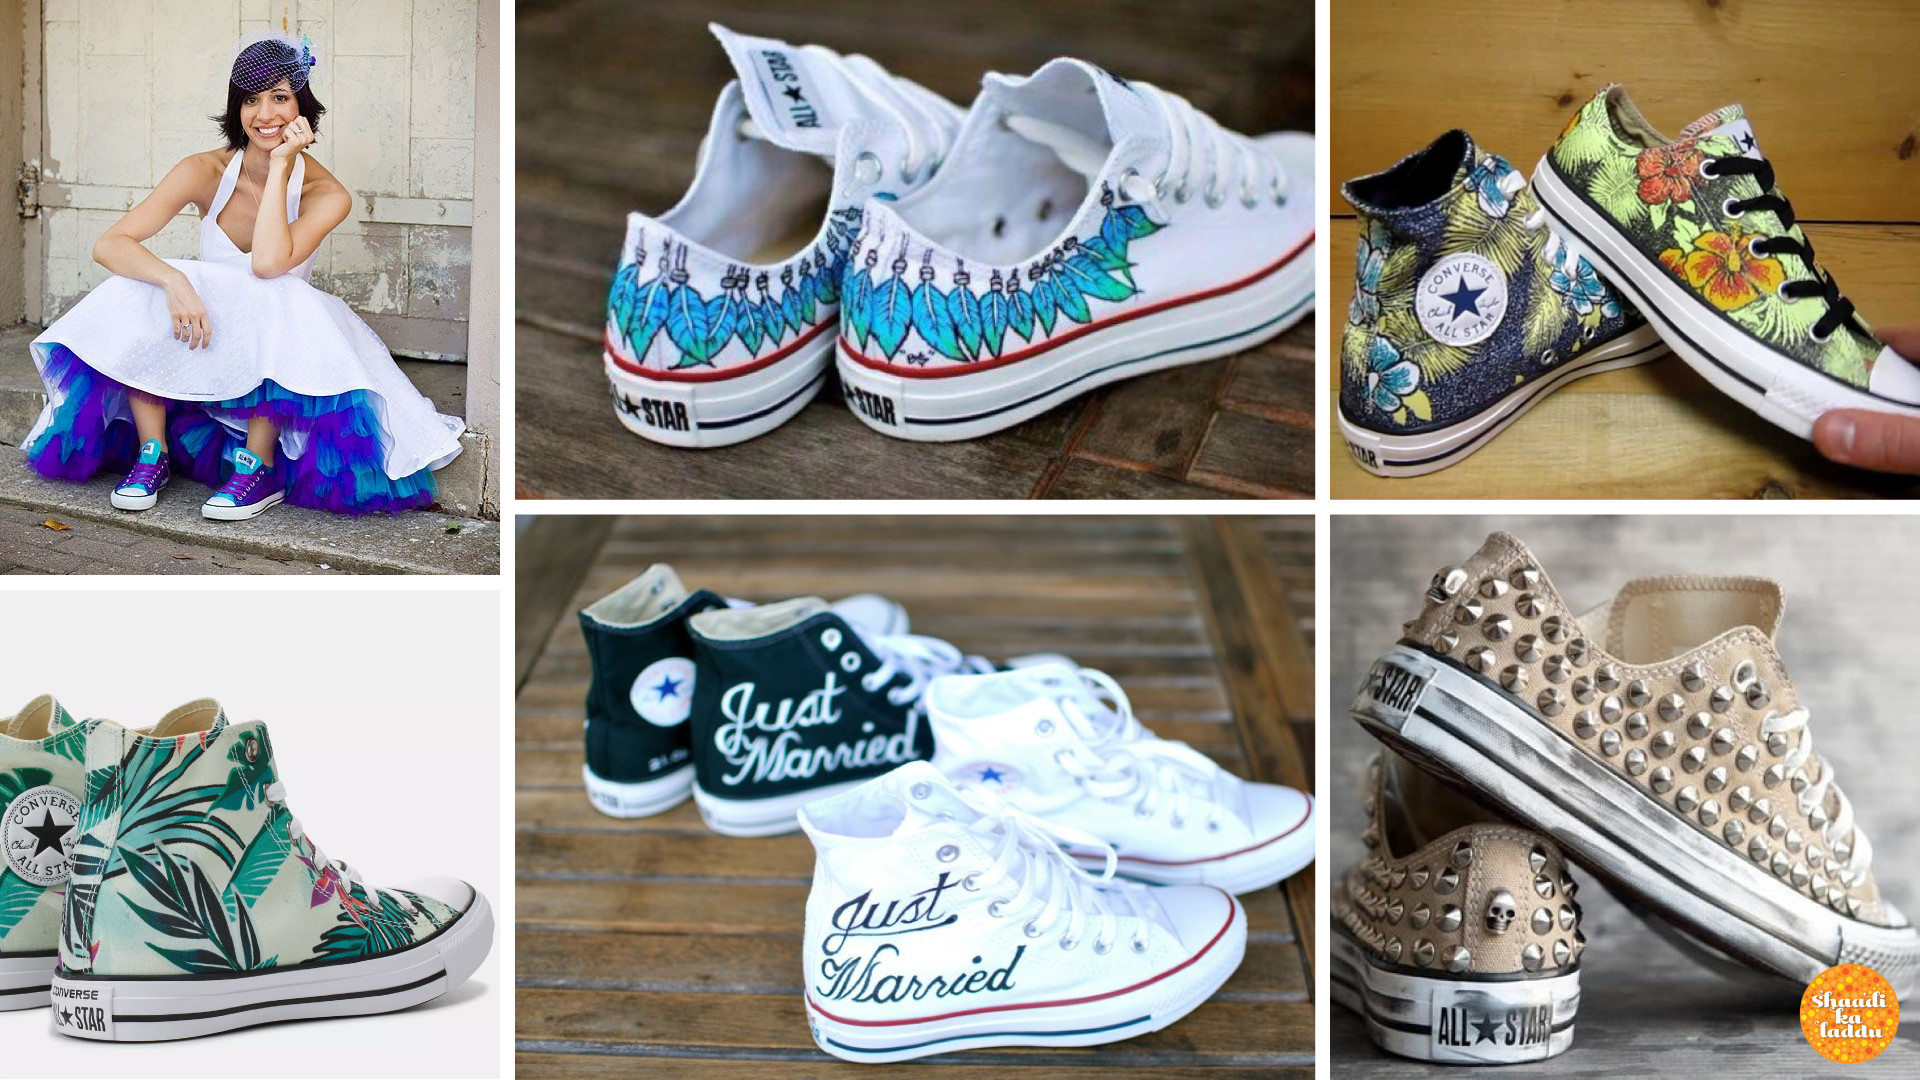 Floral, Lace and Colour – Converse Has It All